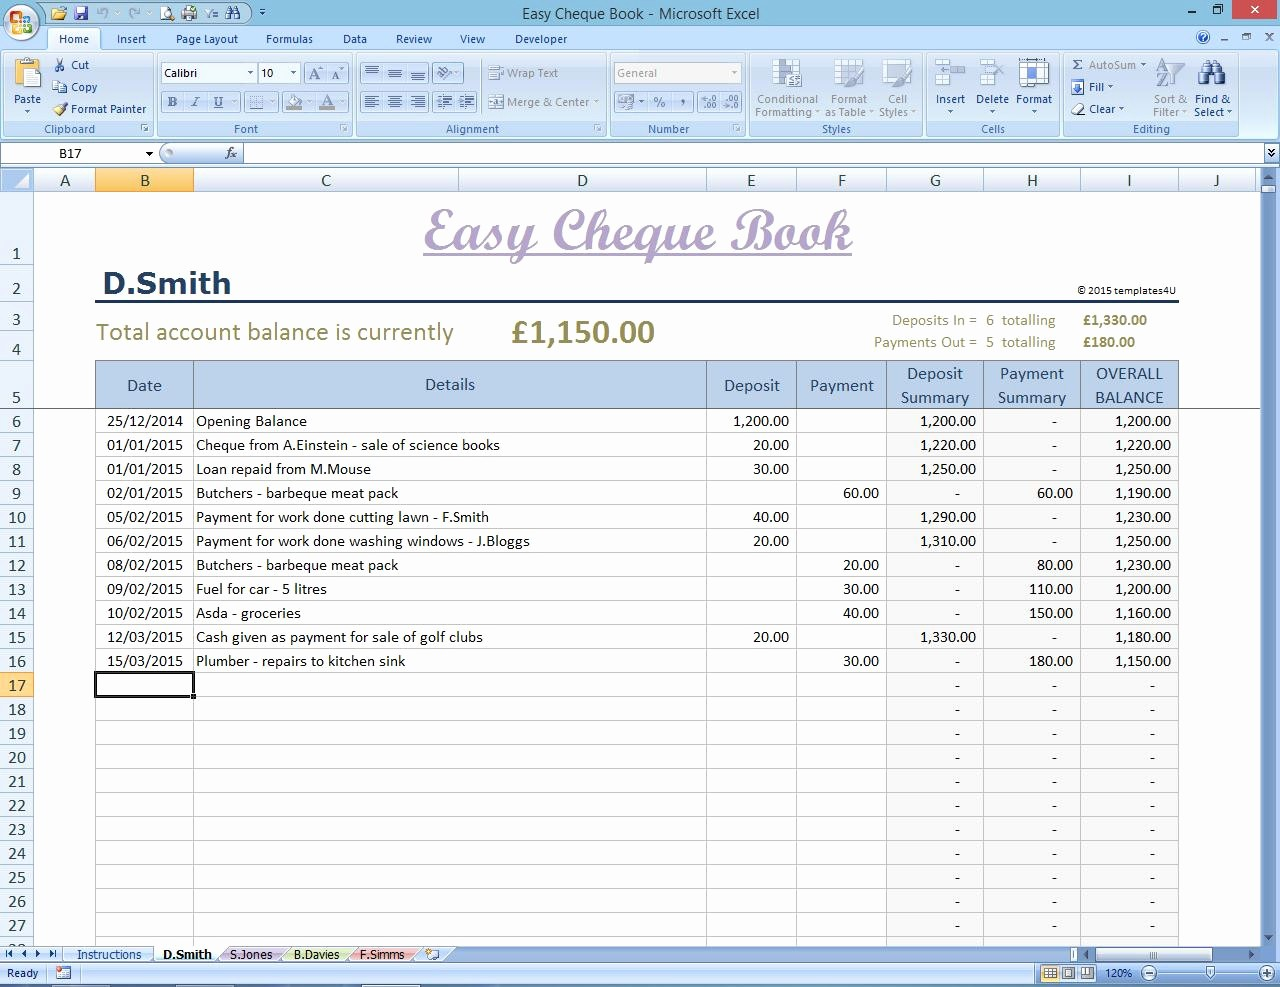 Monthly Expense Sheet Excel Template Fresh Excel Templates for Monthly Expense